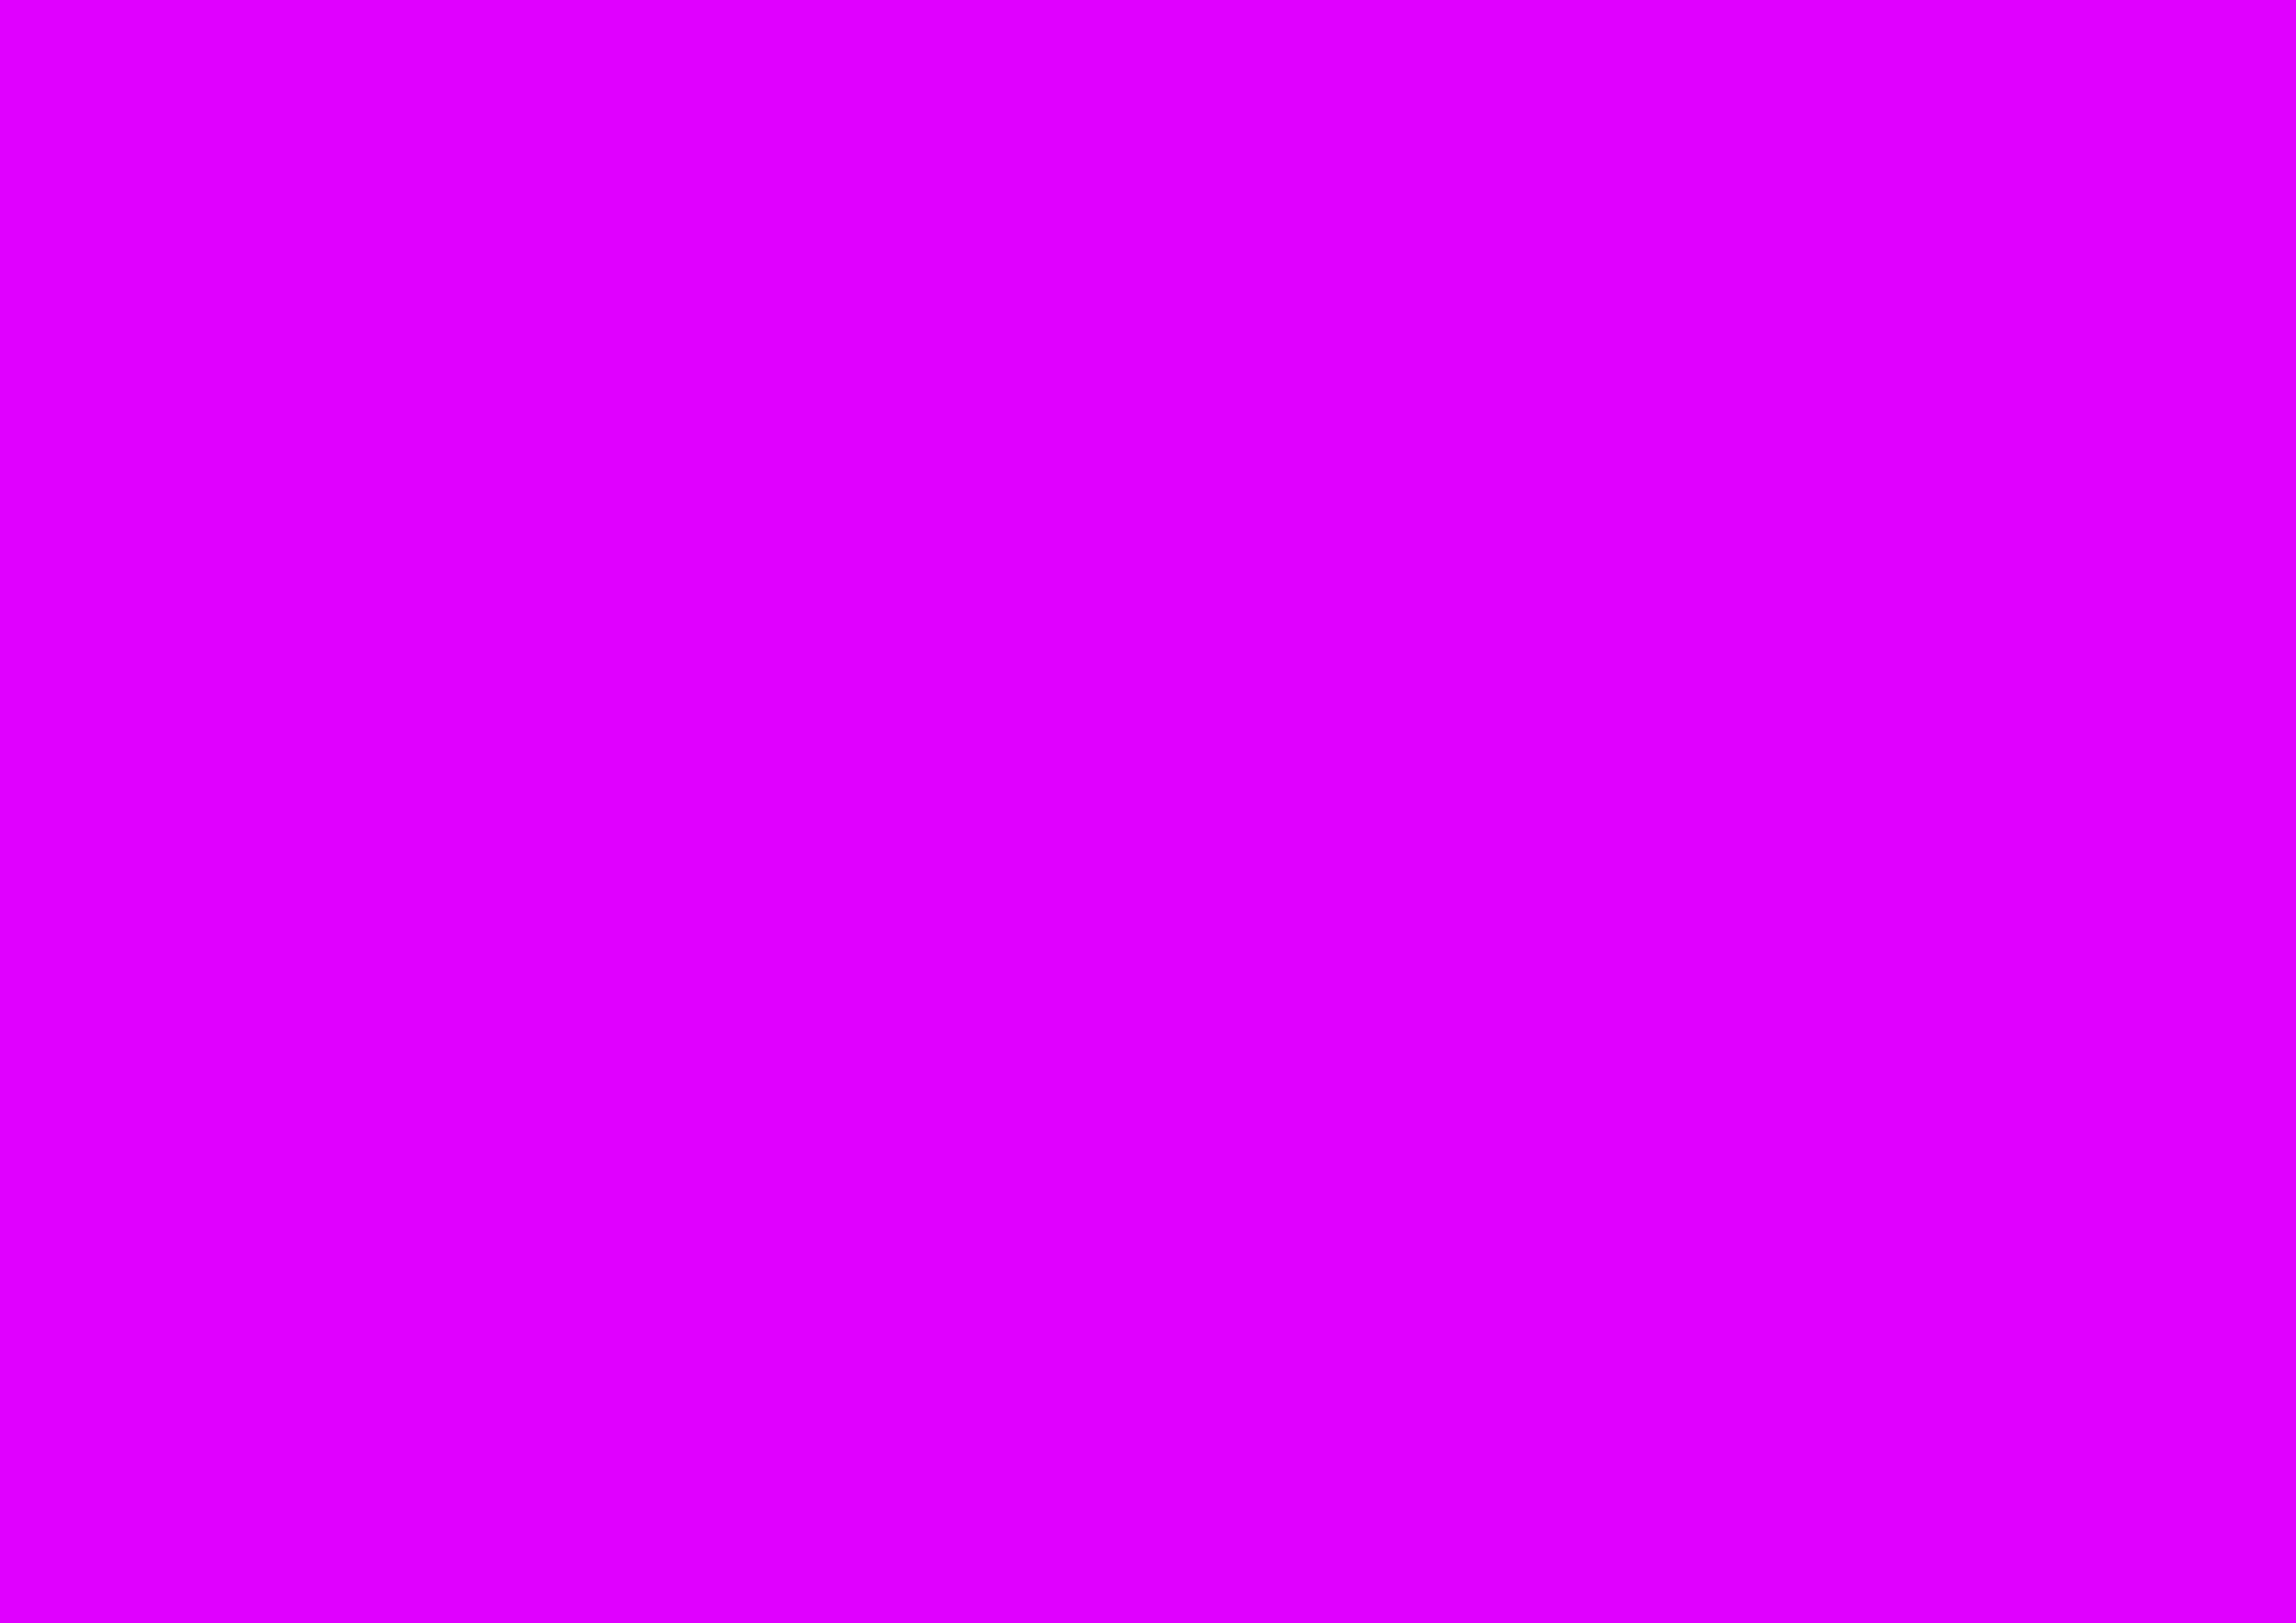 3508x2480 Phlox Solid Color Background